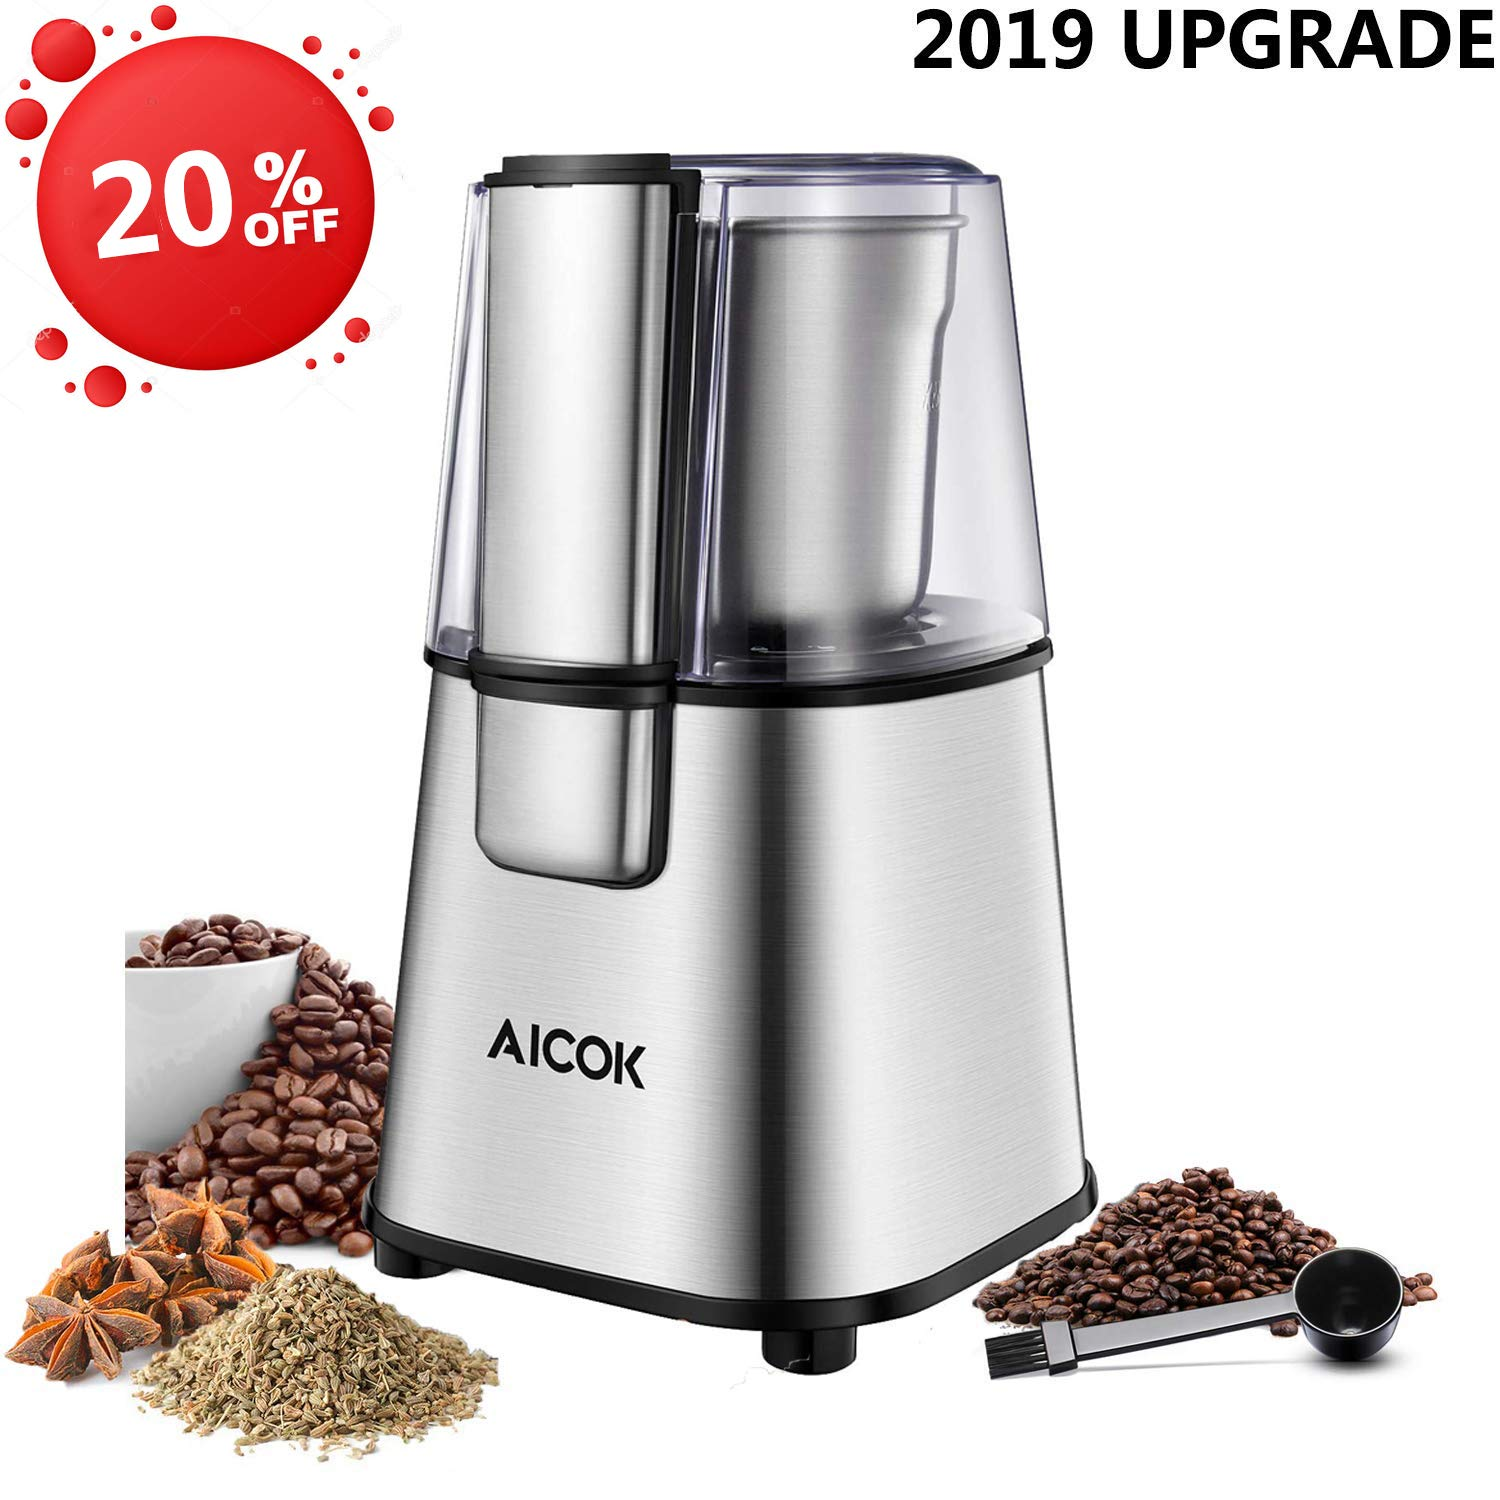 AICOK Coffee Grinder, Electric Coffee and Spice Grinder, 2.5 Ounces Removable Grinding Cup, Stainless Steel Base and Blades, 200W Efficient Motor by ACIOK